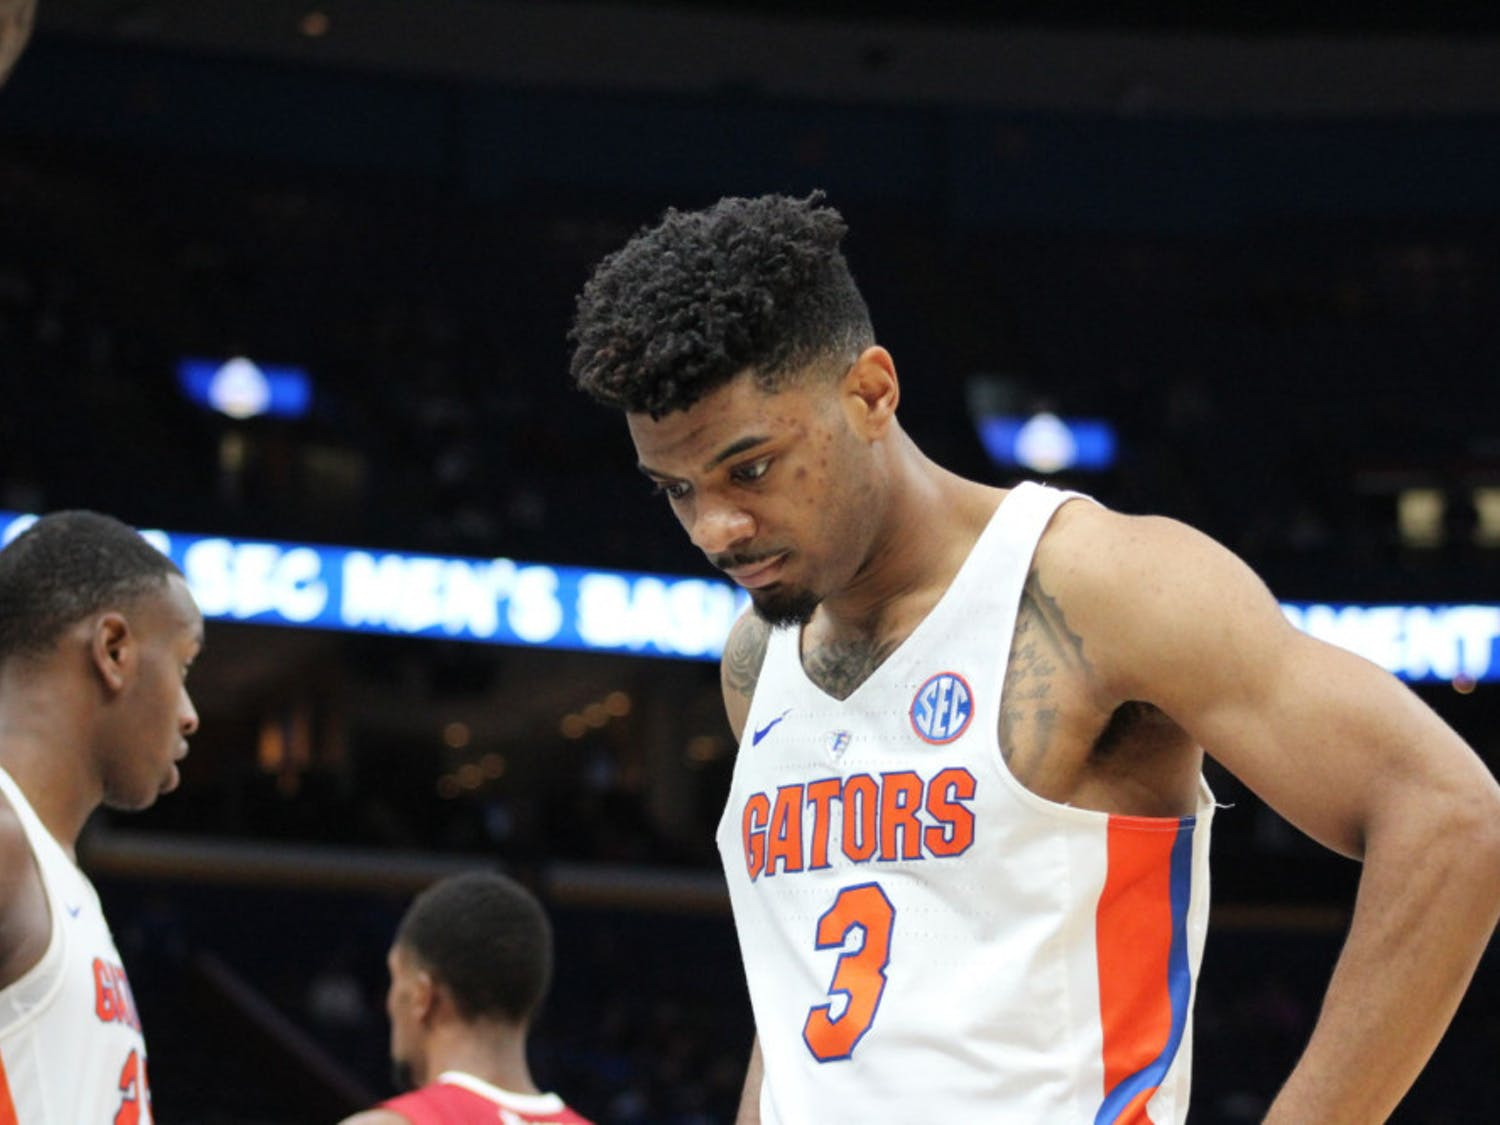 Guard Jalen Hudson led the Gators with 23 points off of 50 percent shooting in Florida's Round of 32 loss to Texas Tech on Saturday